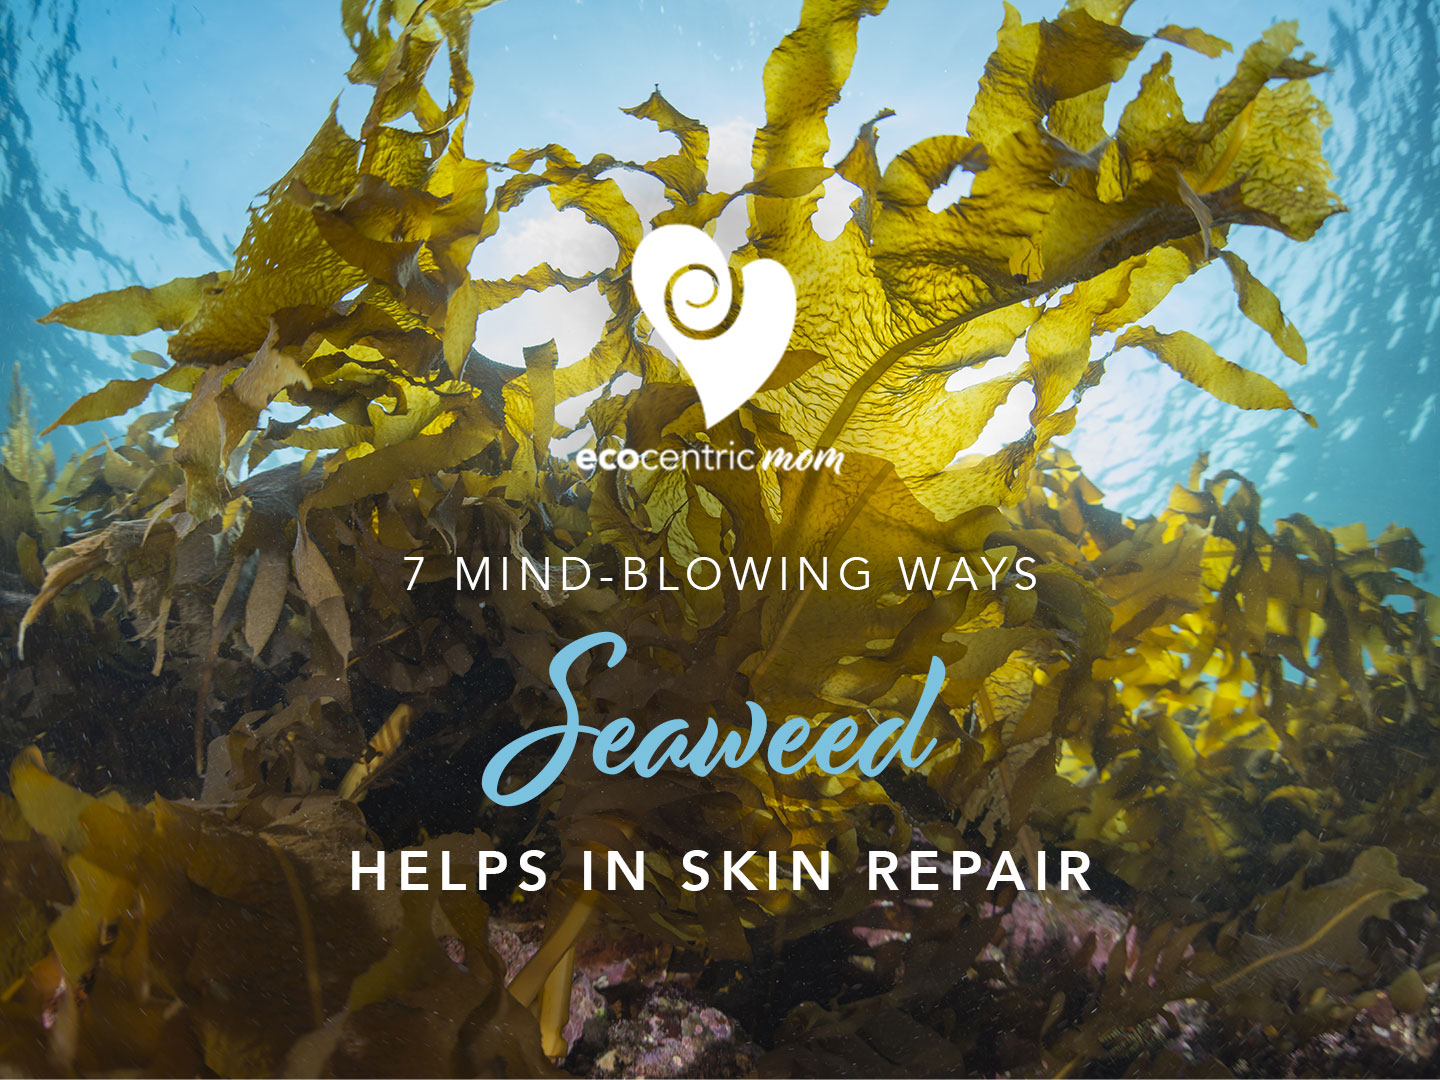 7 Mind-blowing Ways Seaweed Helps In Skin Repair